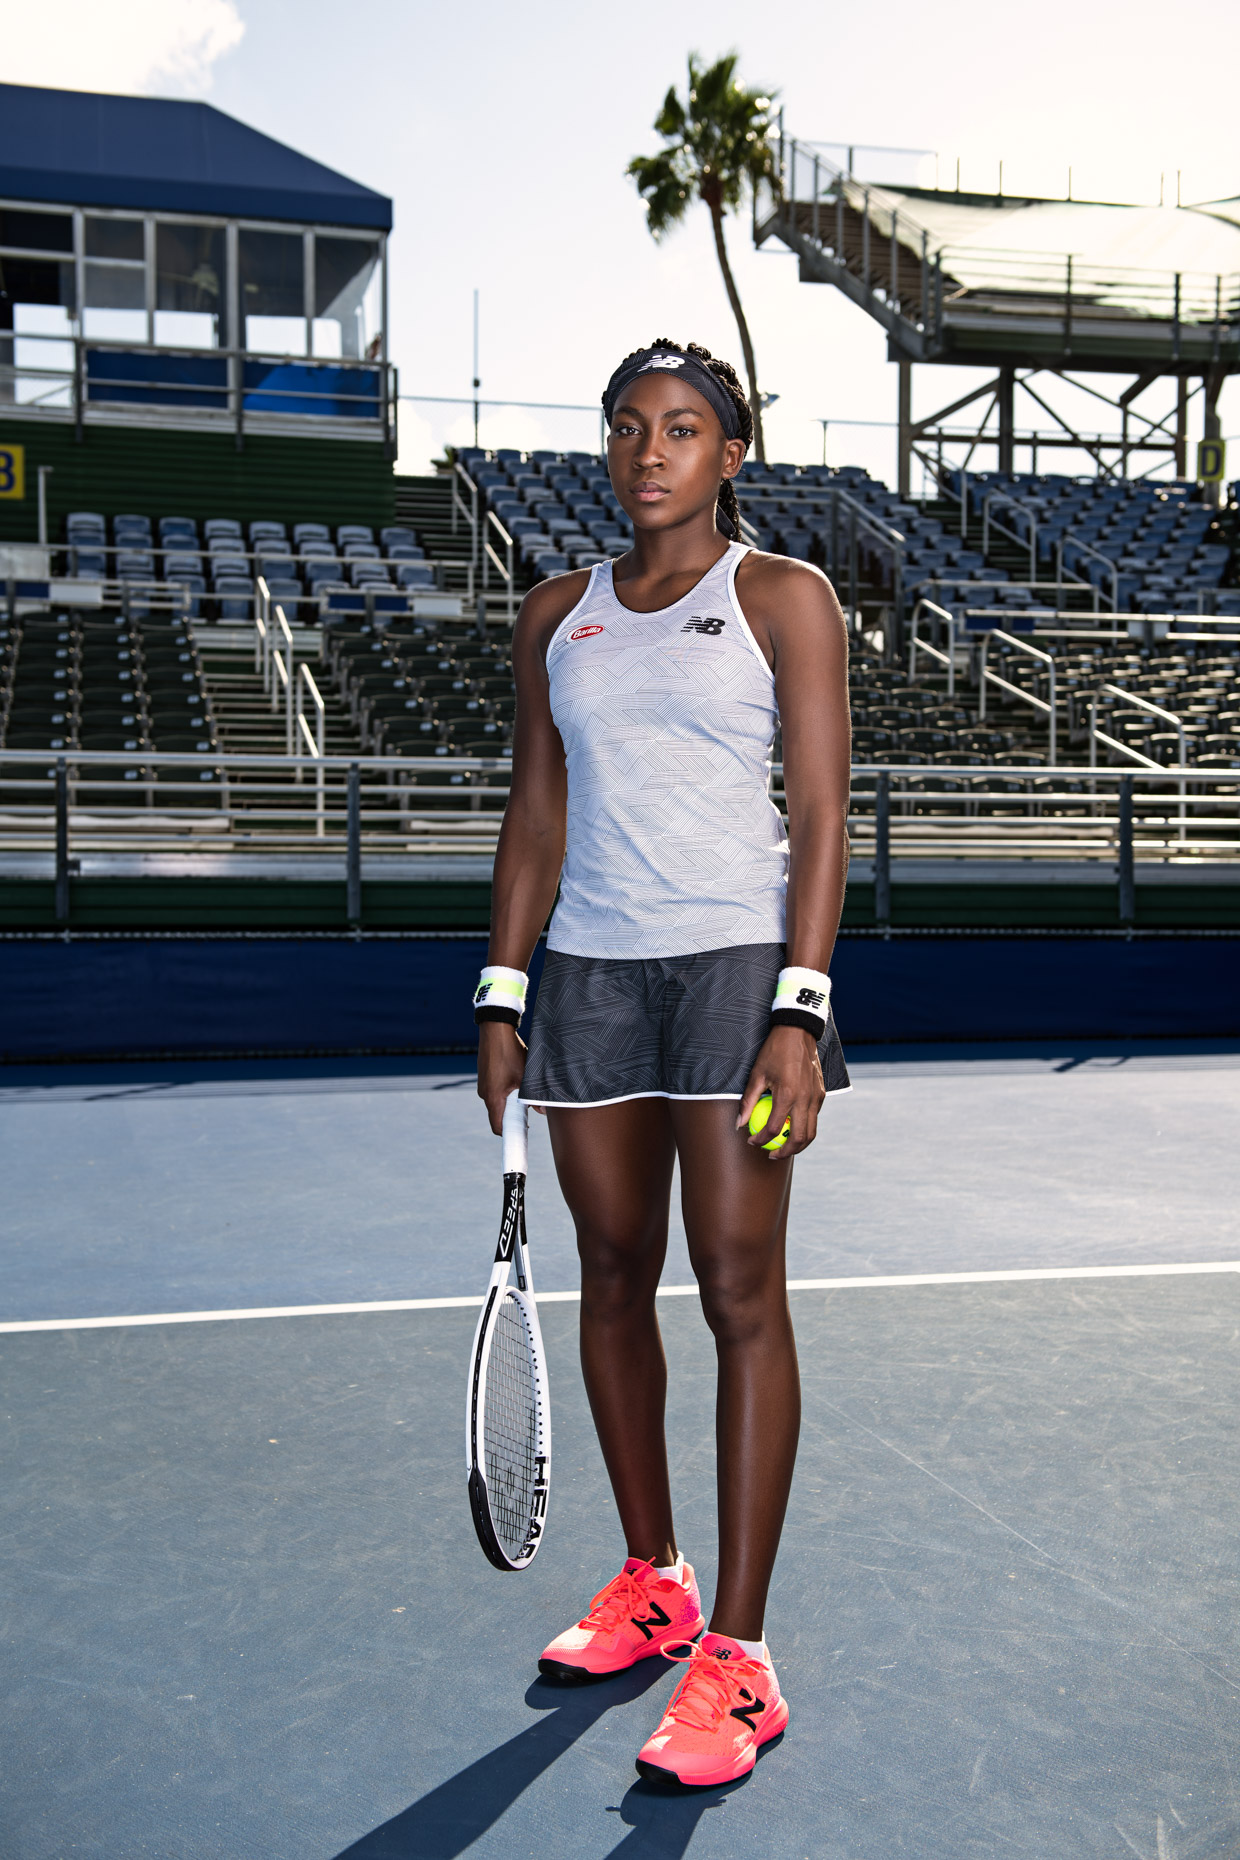 Coco Gauff - Tennis photoshoot - Delray Beach, FL - US Open - New Balance 5